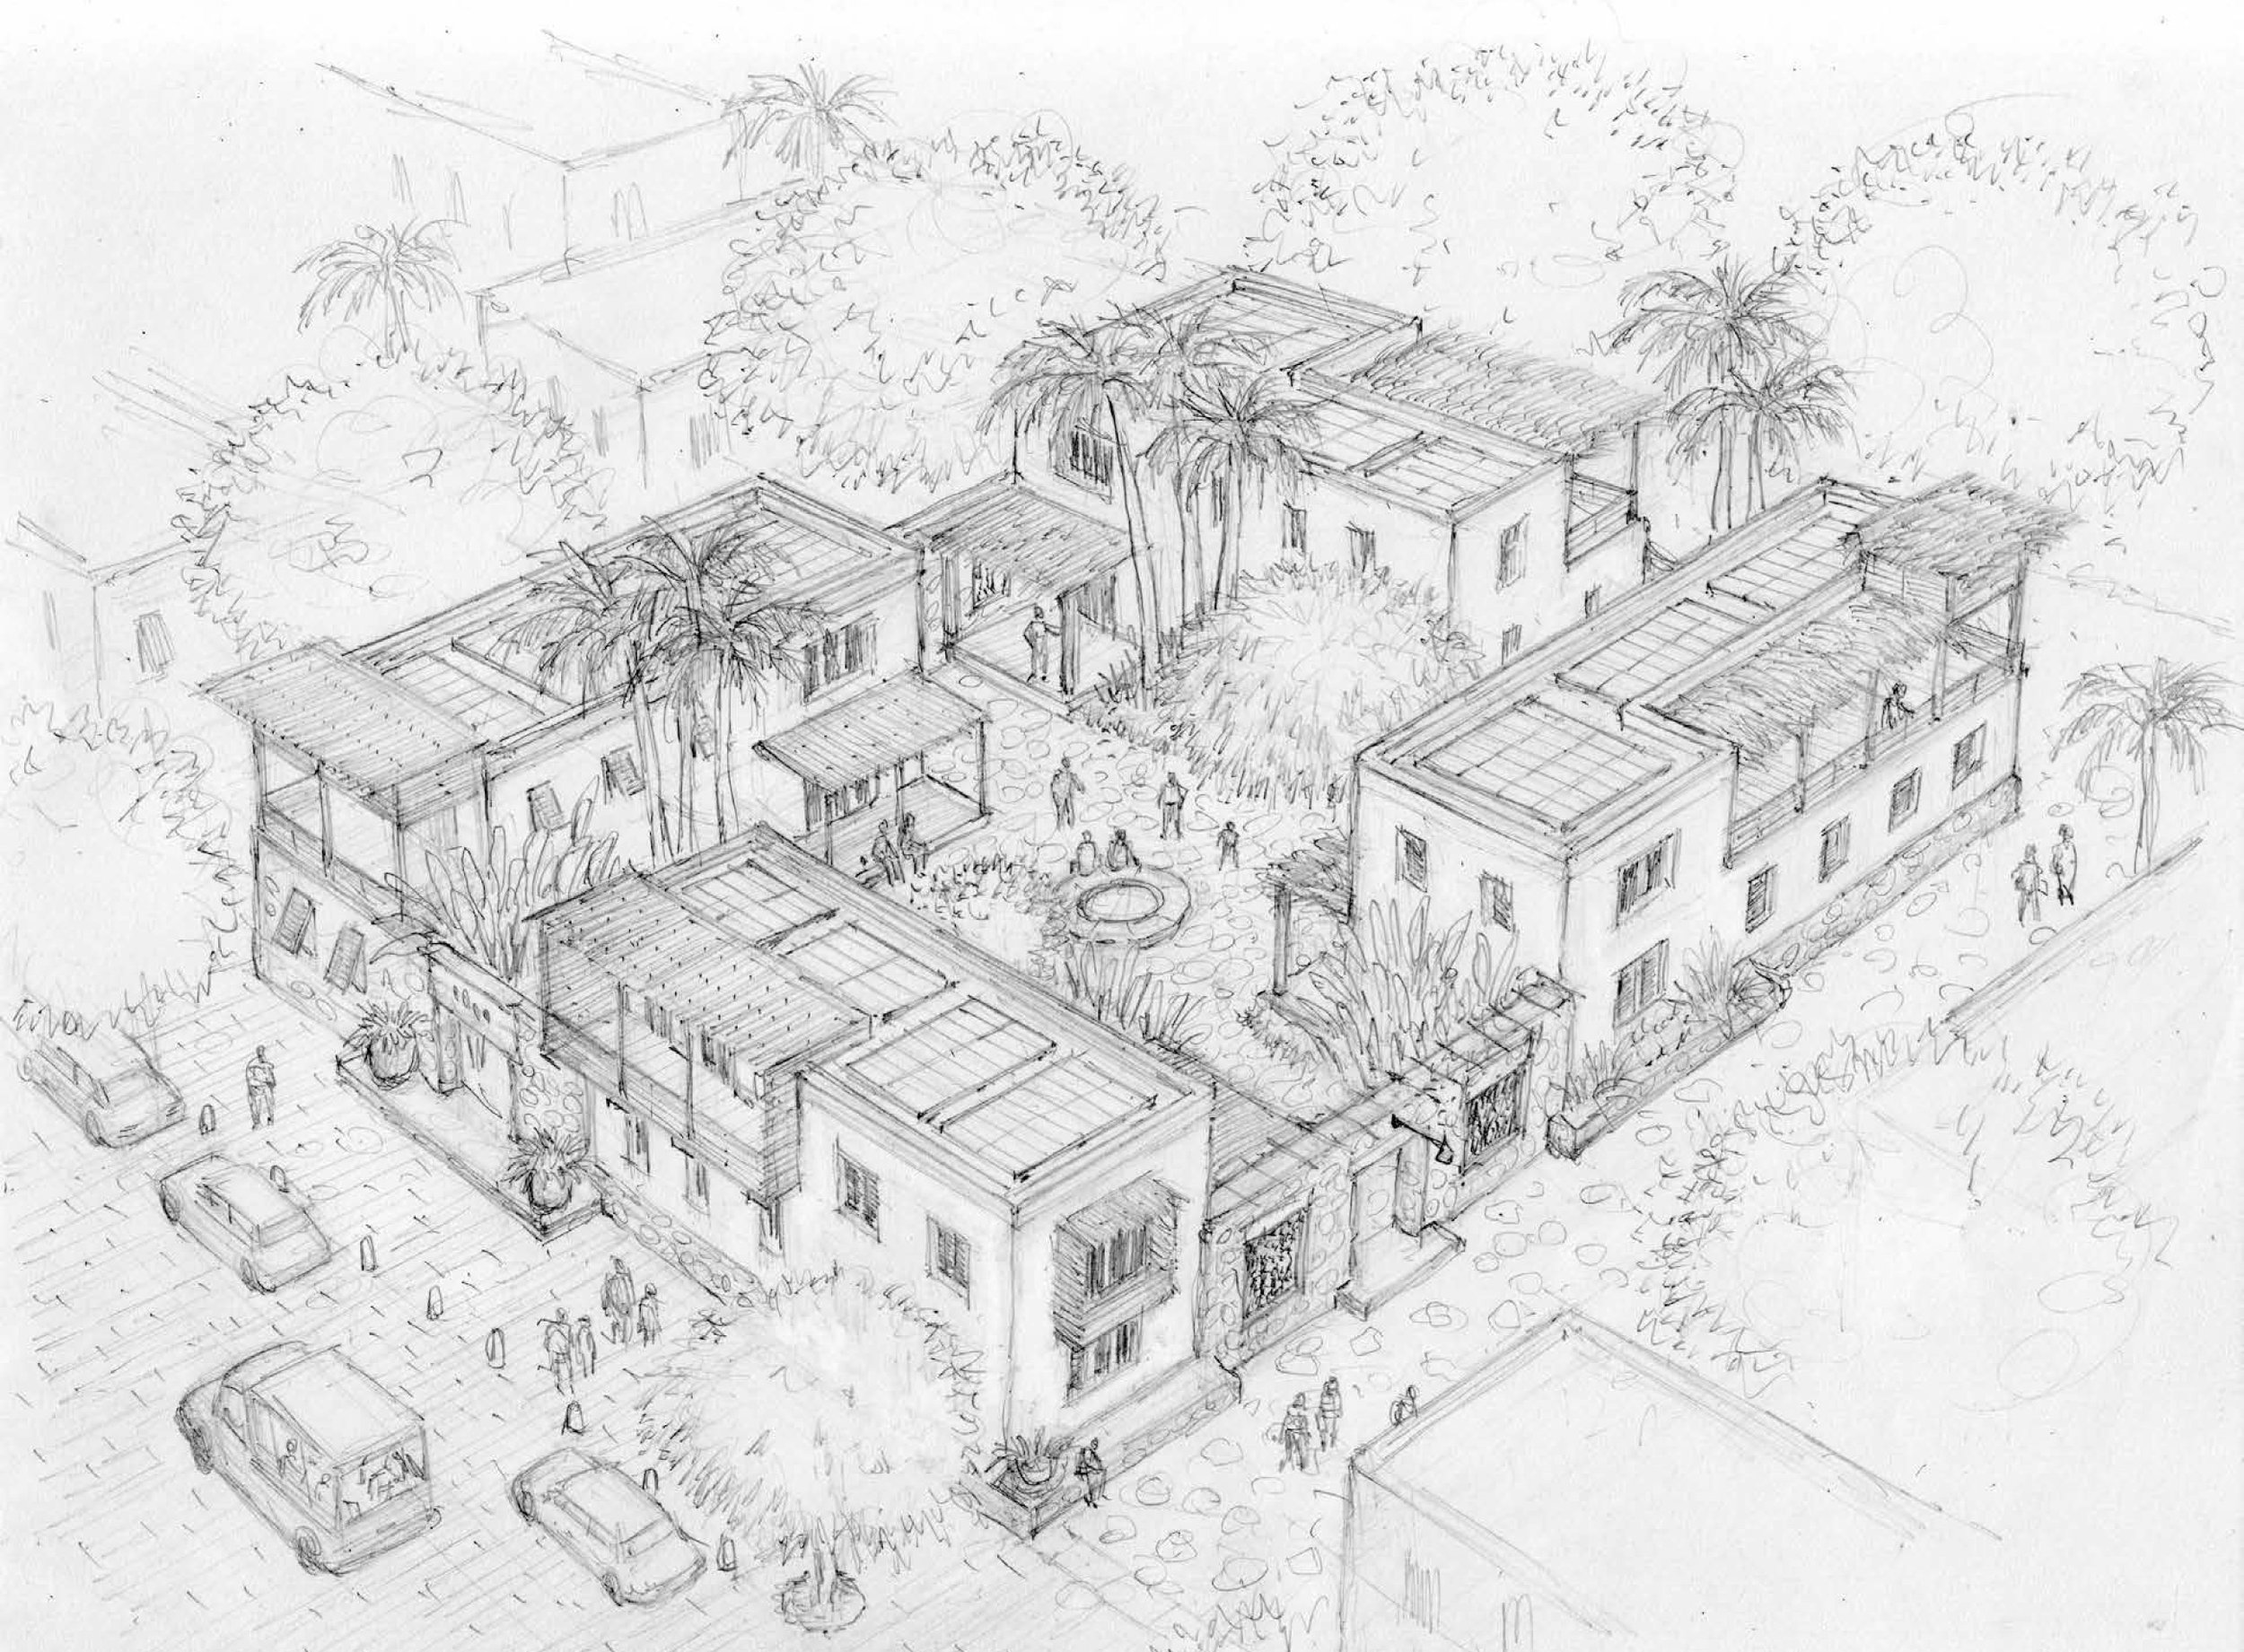 Residential Homes (Design and Drawing by Chris Ritter)